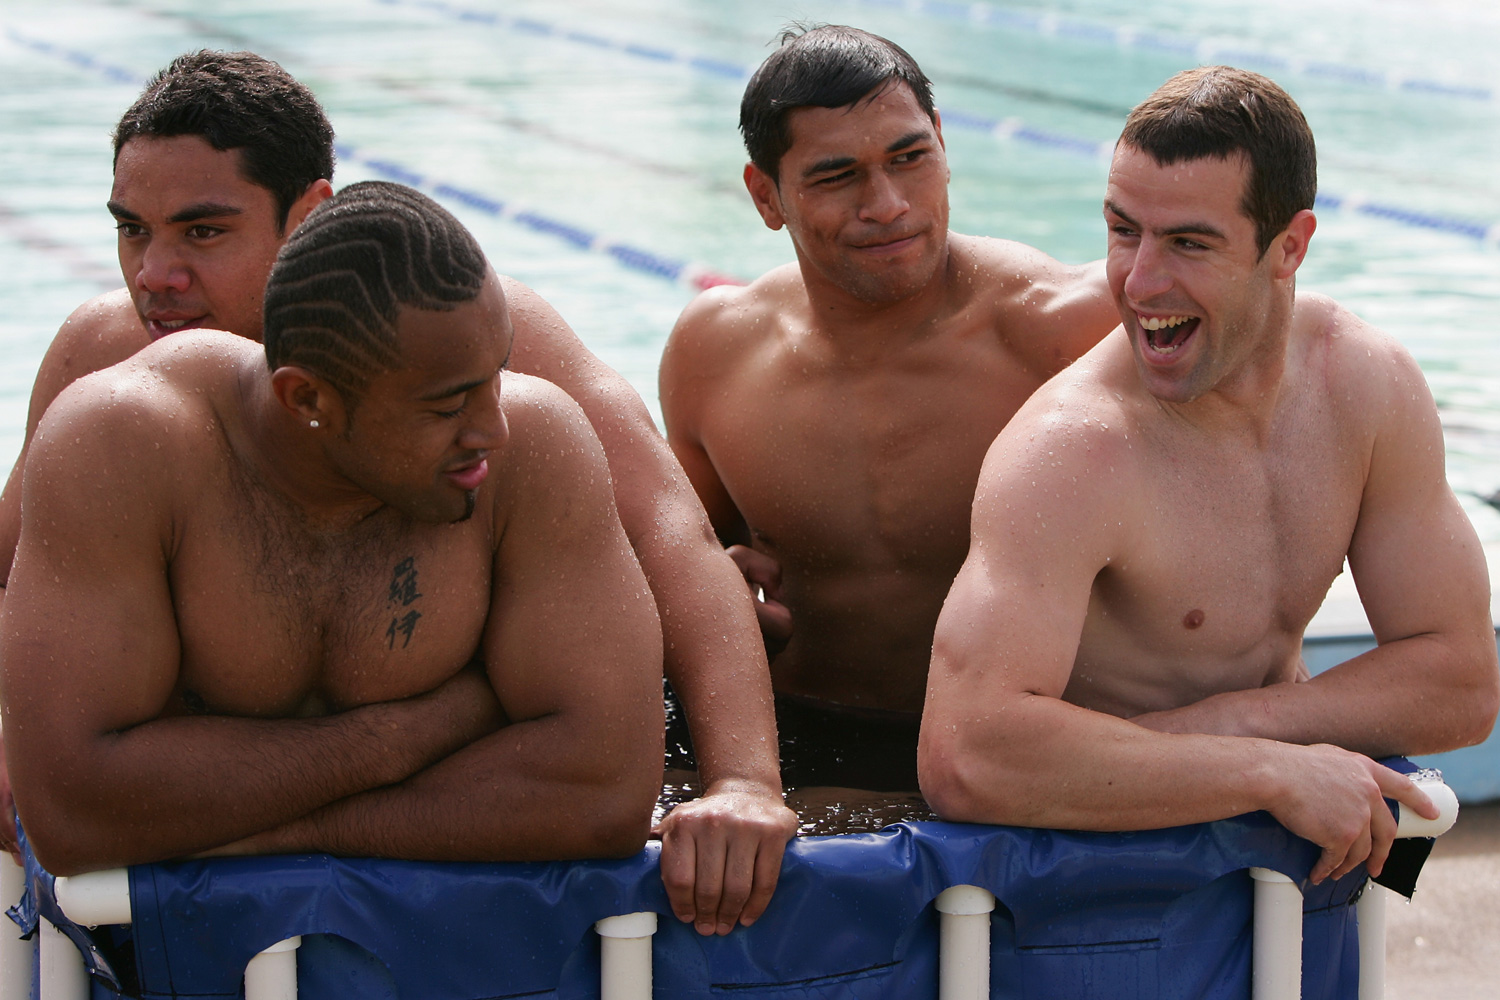 From left to right, Australian rugby footballers Willie Tonga, Roy Asotasi, Matt Utai and Luke Patten of the Bulldogs share a laugh while enjoying an ice bath together.